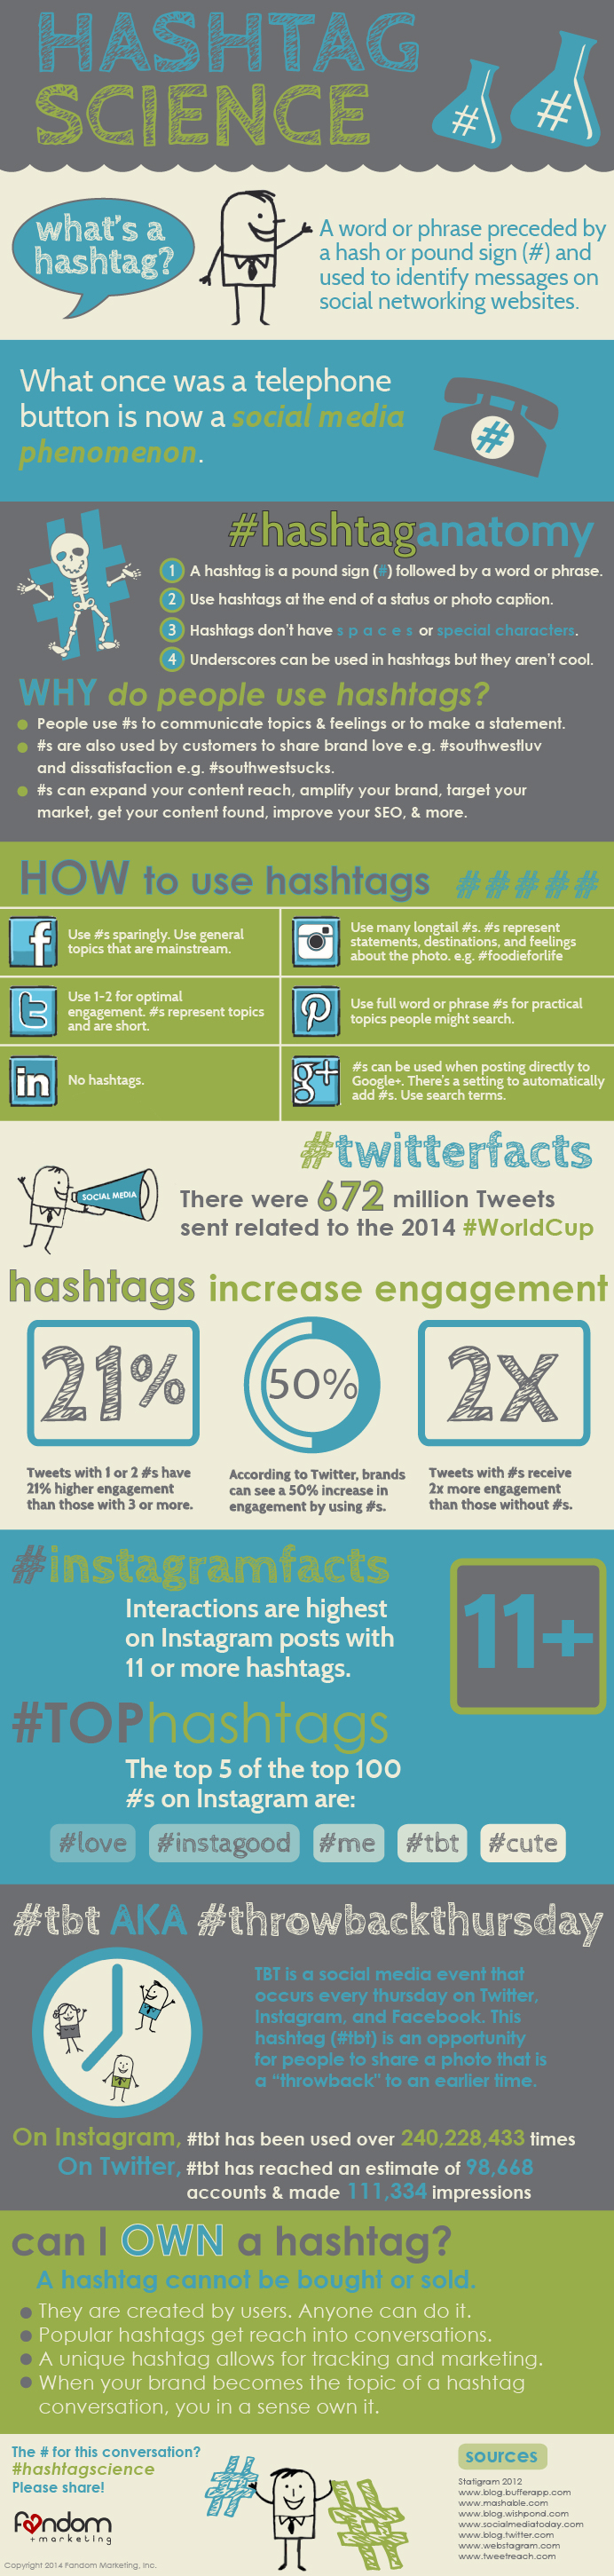 Hashtag Science Infographic_Fandom Marketing